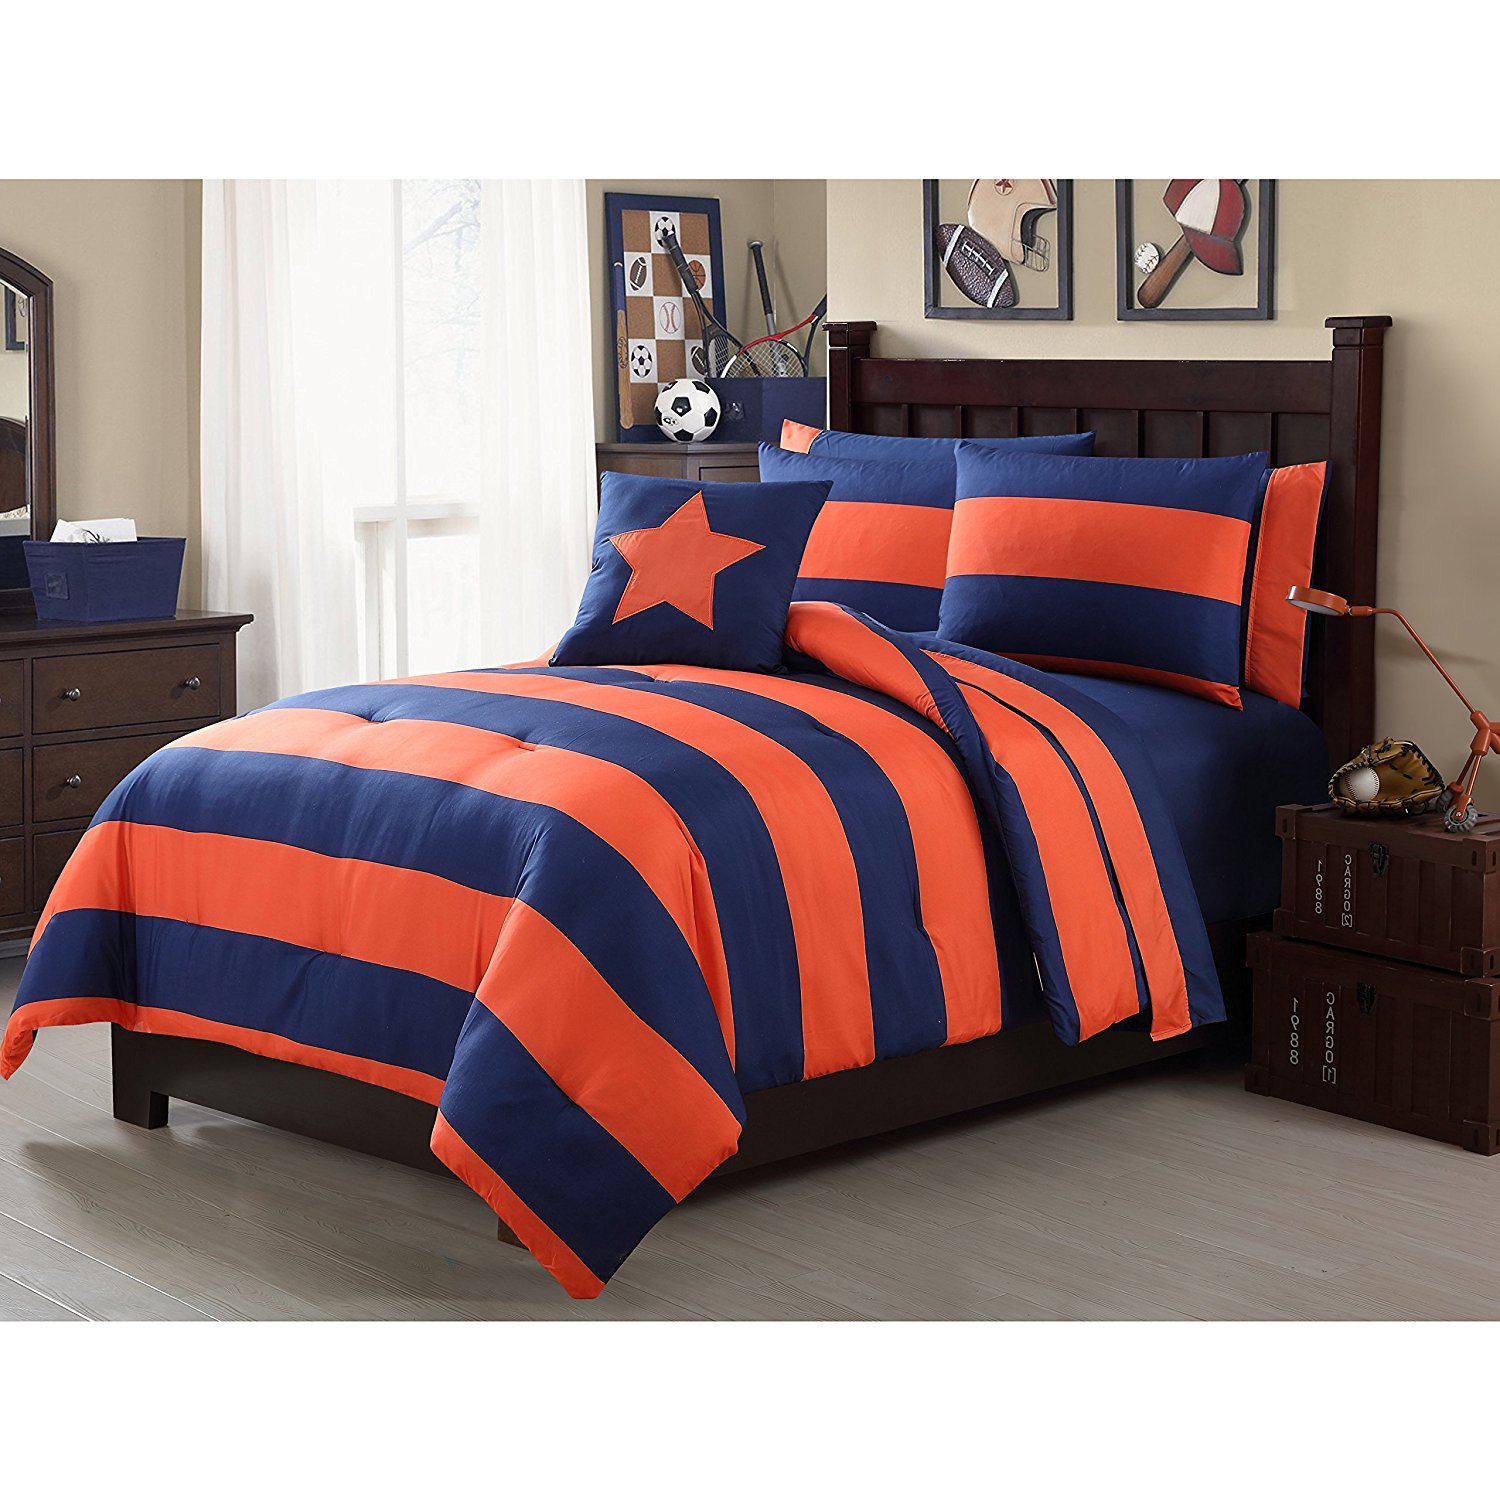 Buy 6 Piece Navy Blue Orange Rugby Stripes Comforter Twin Set Rugby Bed In A Bag With Sheet Set Tangerine Striped Pattern Team Sports Horizontal Design Sporty Themed Unisex Beautiful Colors In